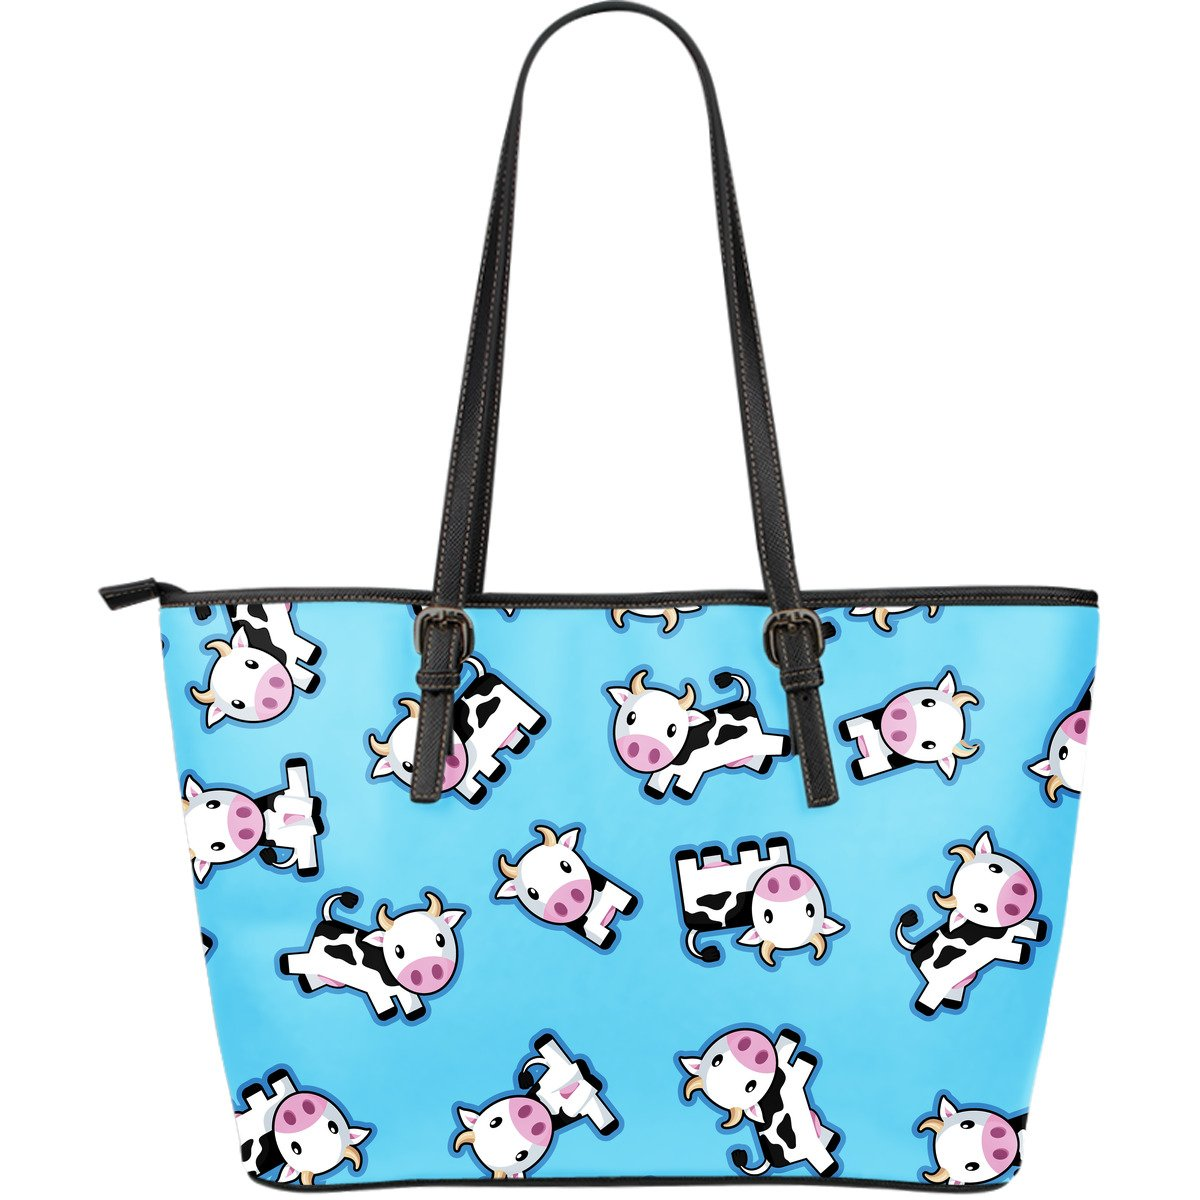 Cute Cartoon Baby Cow Pattern Print Leather Tote Bag GearFrost